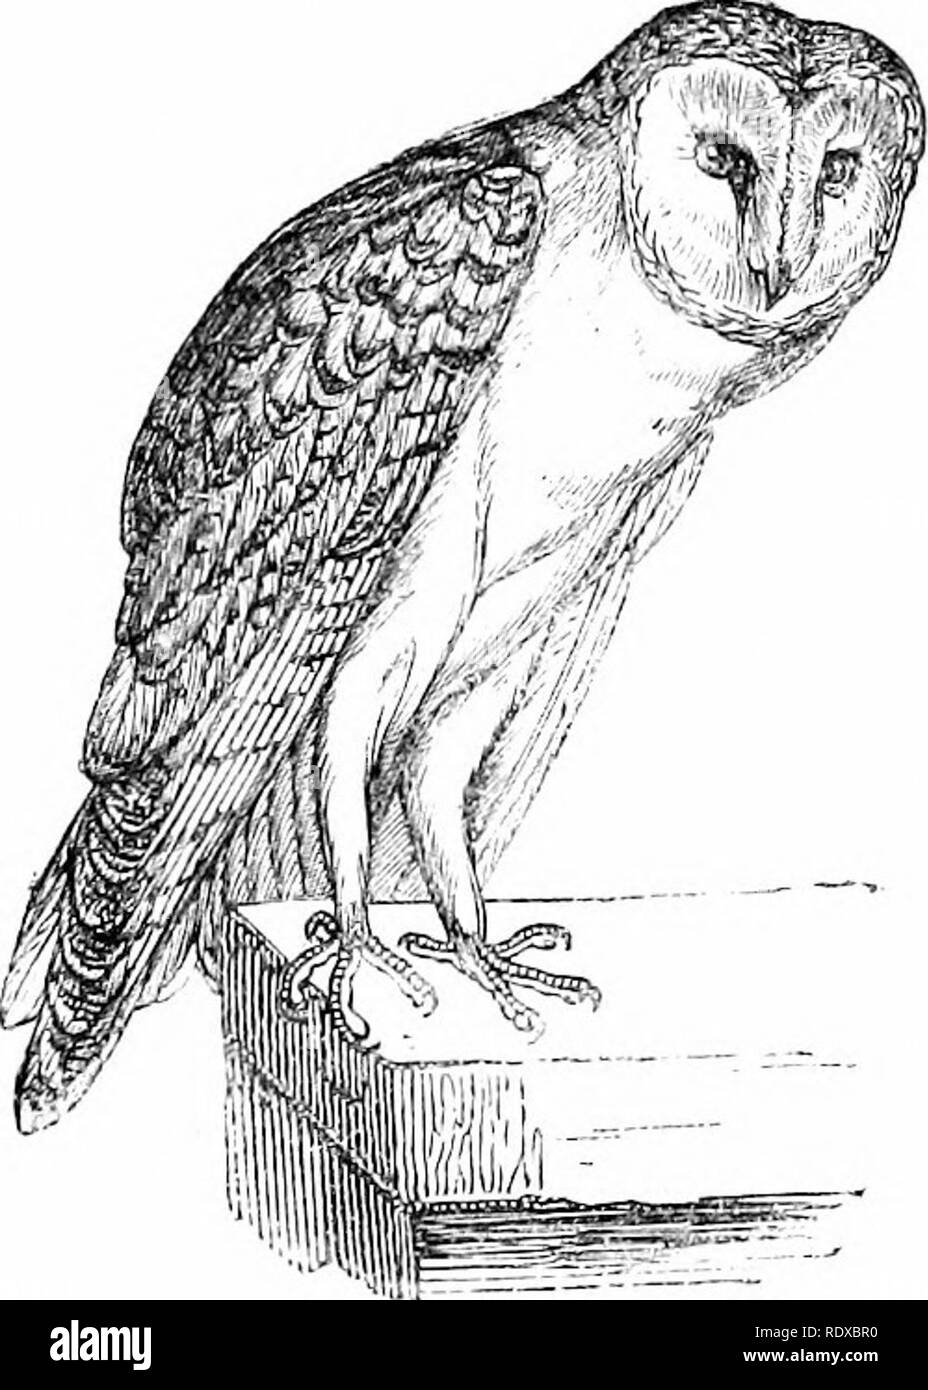 . Reptiles and birds : a popular account of their various orders : with a description of the habits and economy of the most interesting . Birds; Reptiles. BAEN OWLS.. -Biu-n Owl {:6IrLx fjijnuii/;ri^ Yarrell). Mocturnals. The eggs, which are elliptical, are generally five in number, sometimes six or seven, and are deposited in holes in walls, or hollow places in rocks and old trees ; but the bird does not take the trouble to line these holes with grass or leaves. It is but seldom it takes posses- sion of the nests of other birds, although stories are told of its driving away the Martins from t - Stock Image